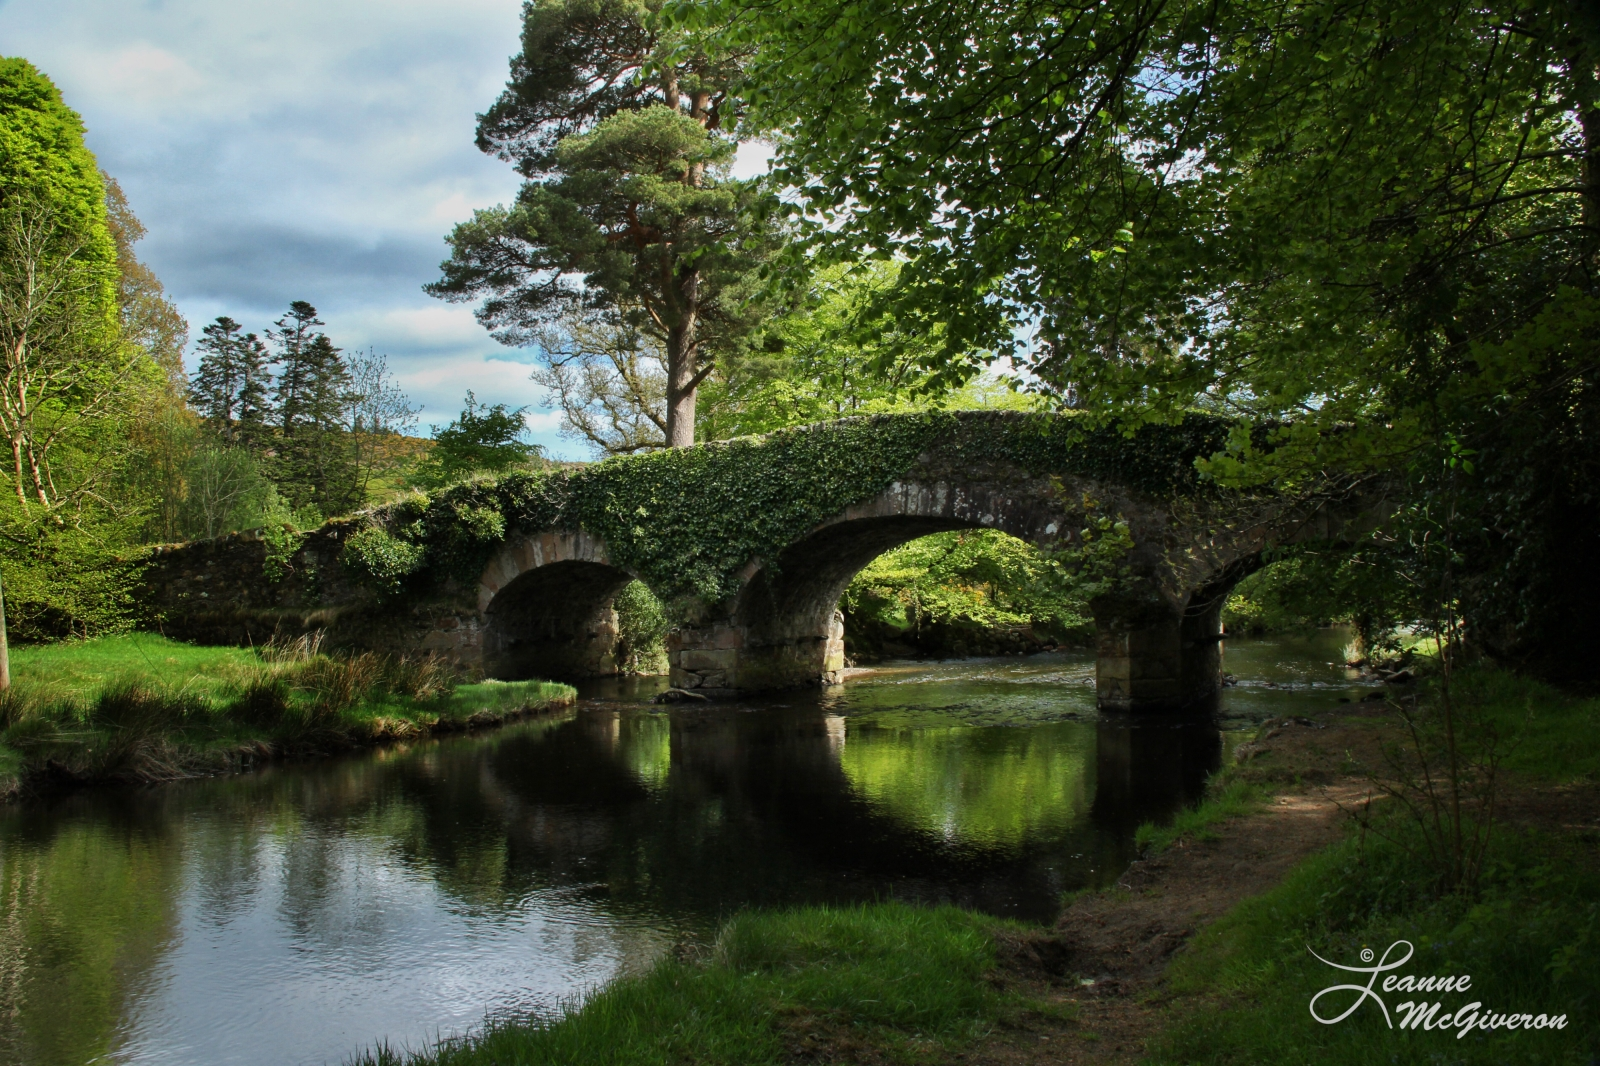 Derrybawn Bridge, Laragh, County Wicklow